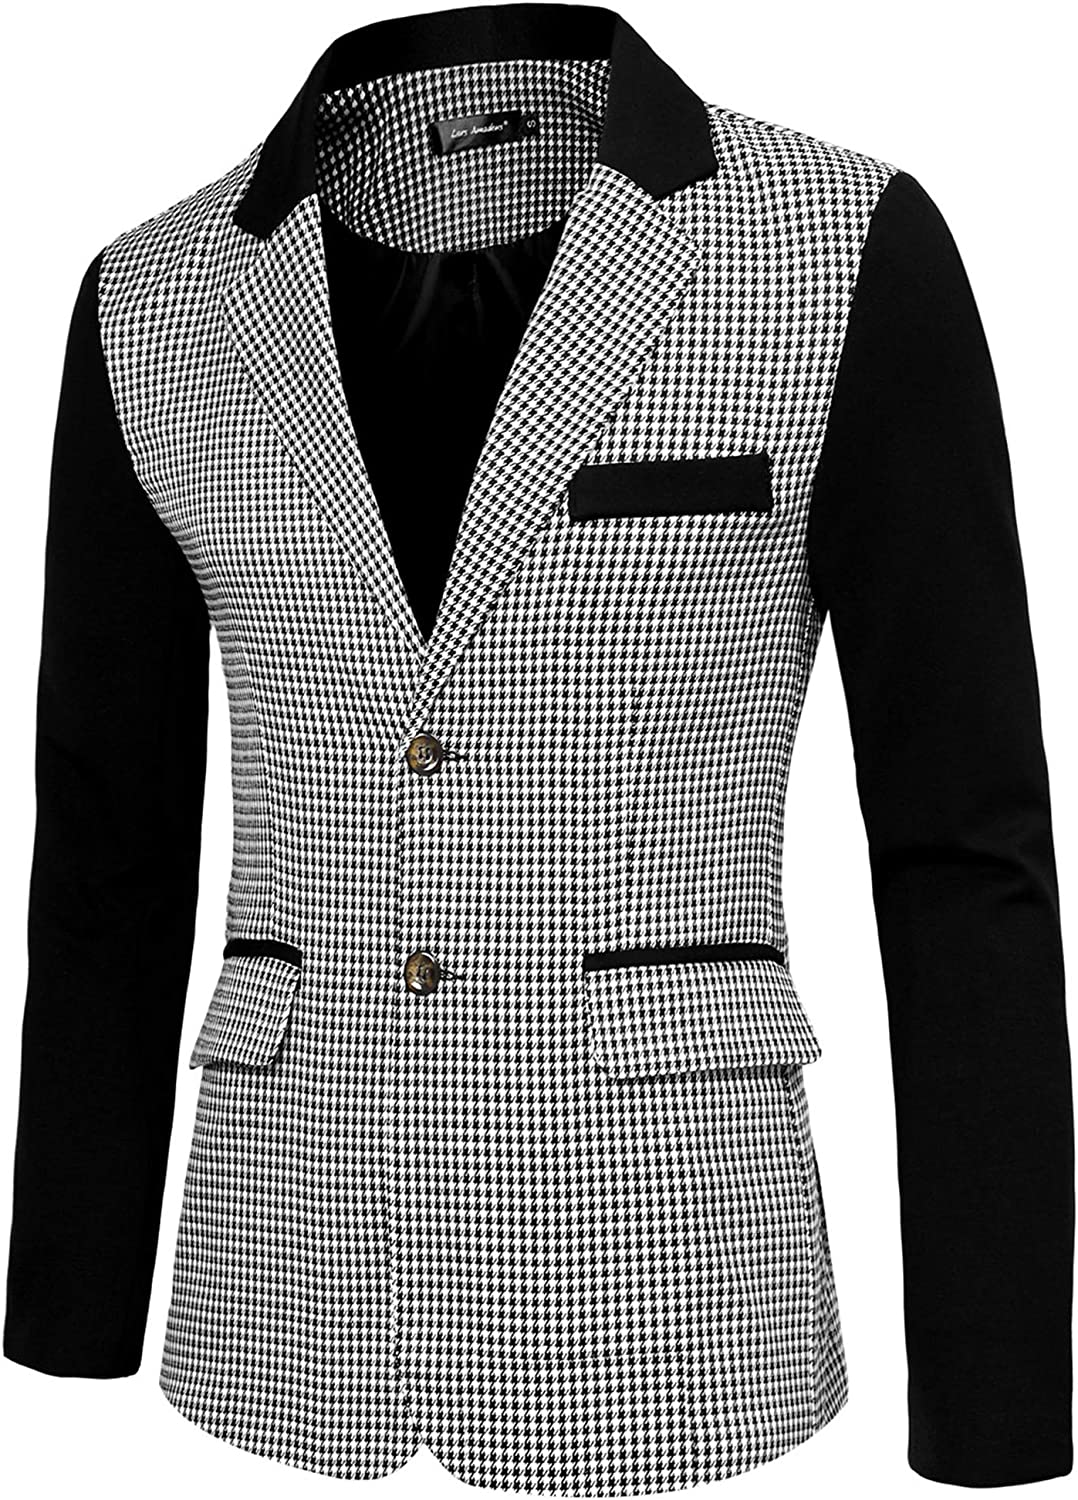 Lars Amadeus Men's Casual Sport Coat Pattern Button Up Houndstooth Plaid Blazer